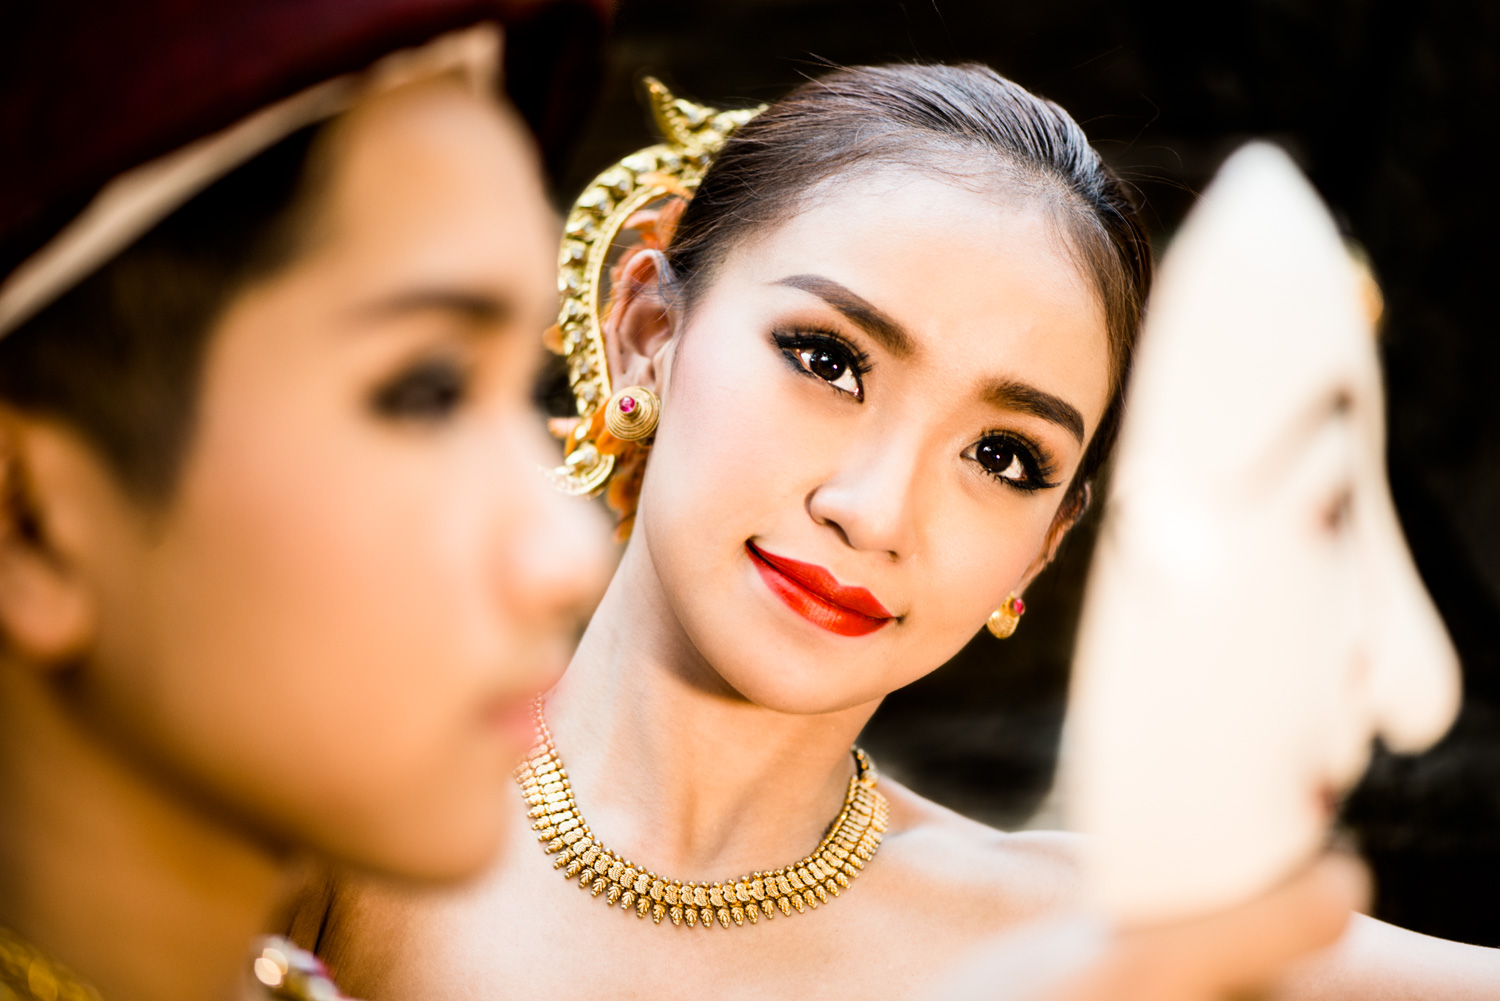 How to Make Well Exposed Photos Every Time Thai Dancer